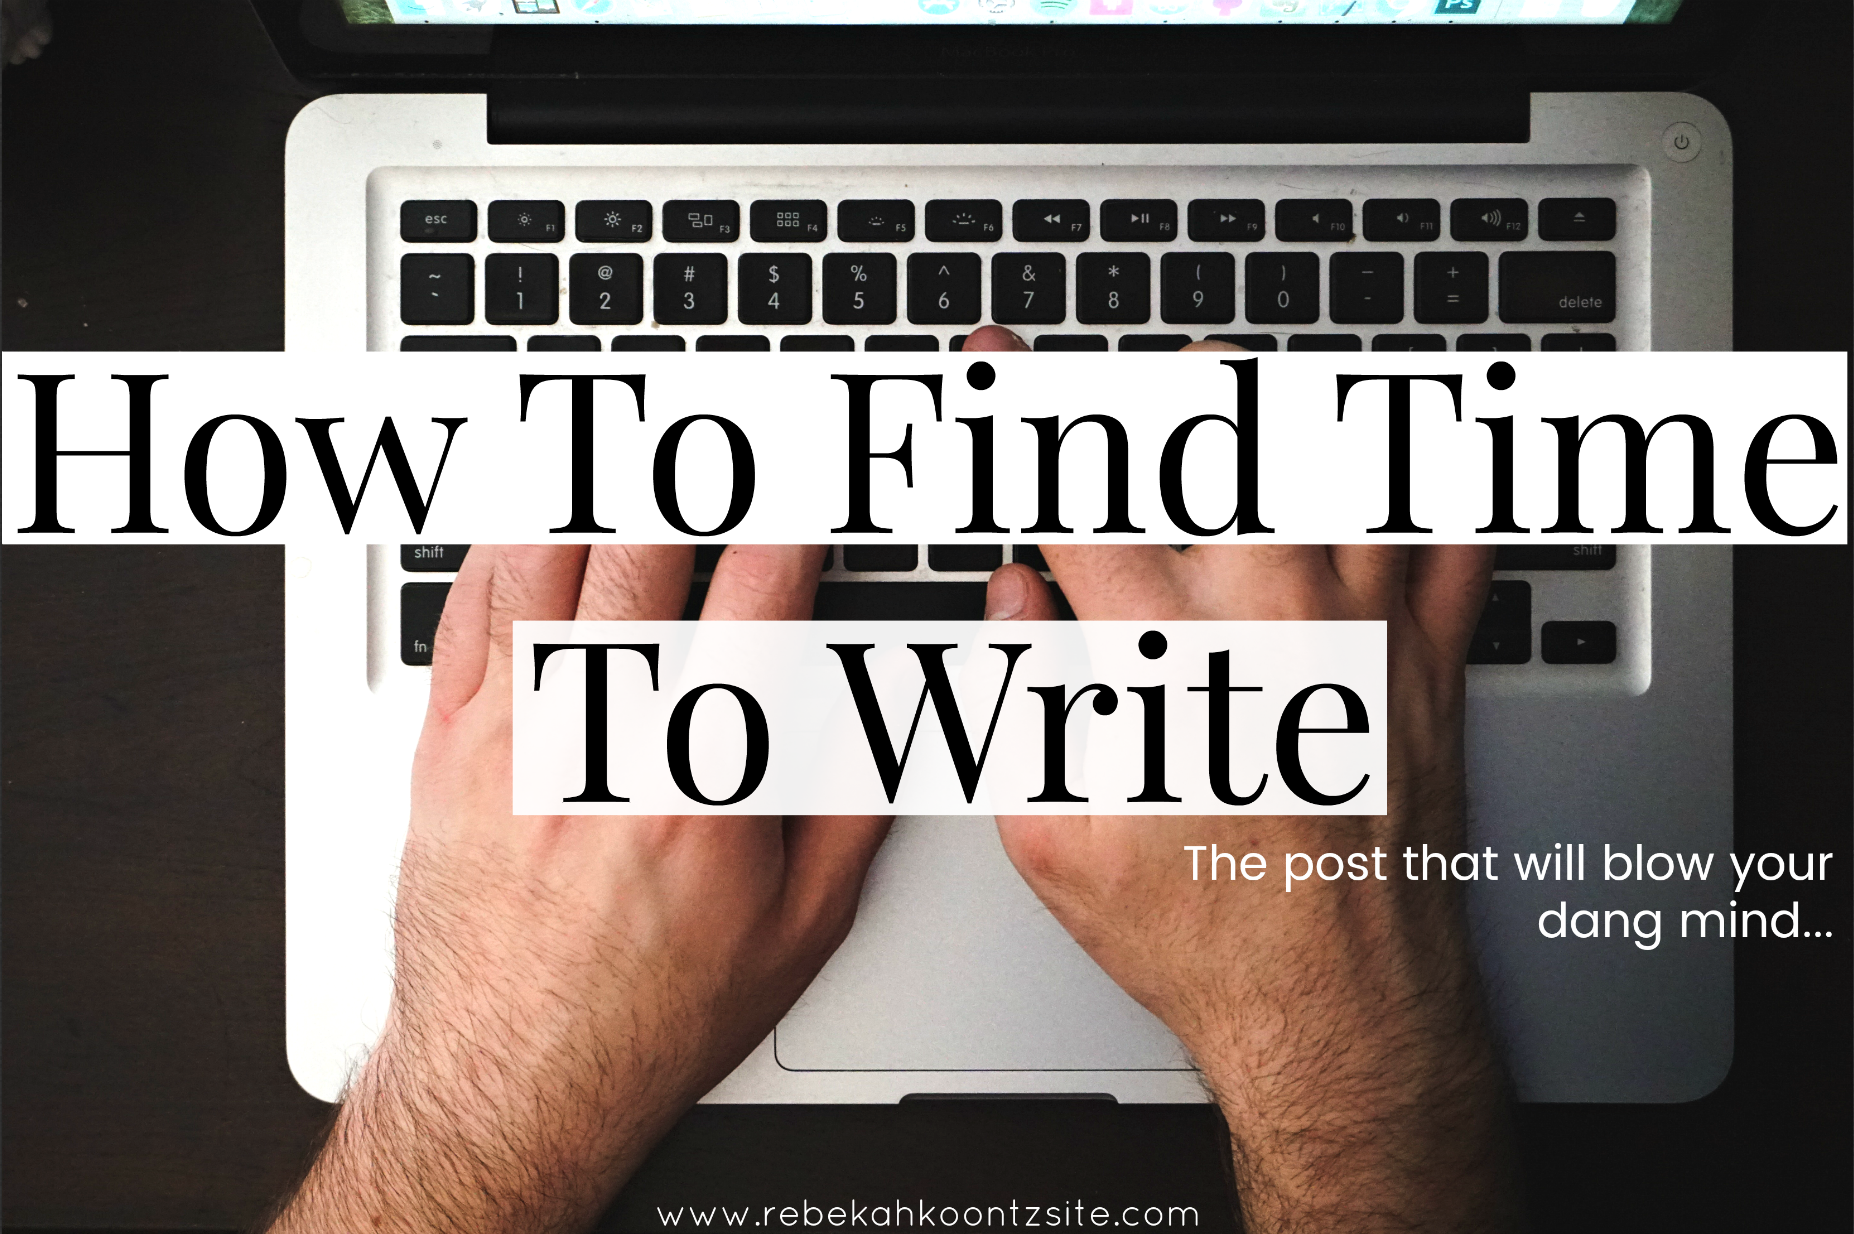 How to find time to write advice tips blogger life